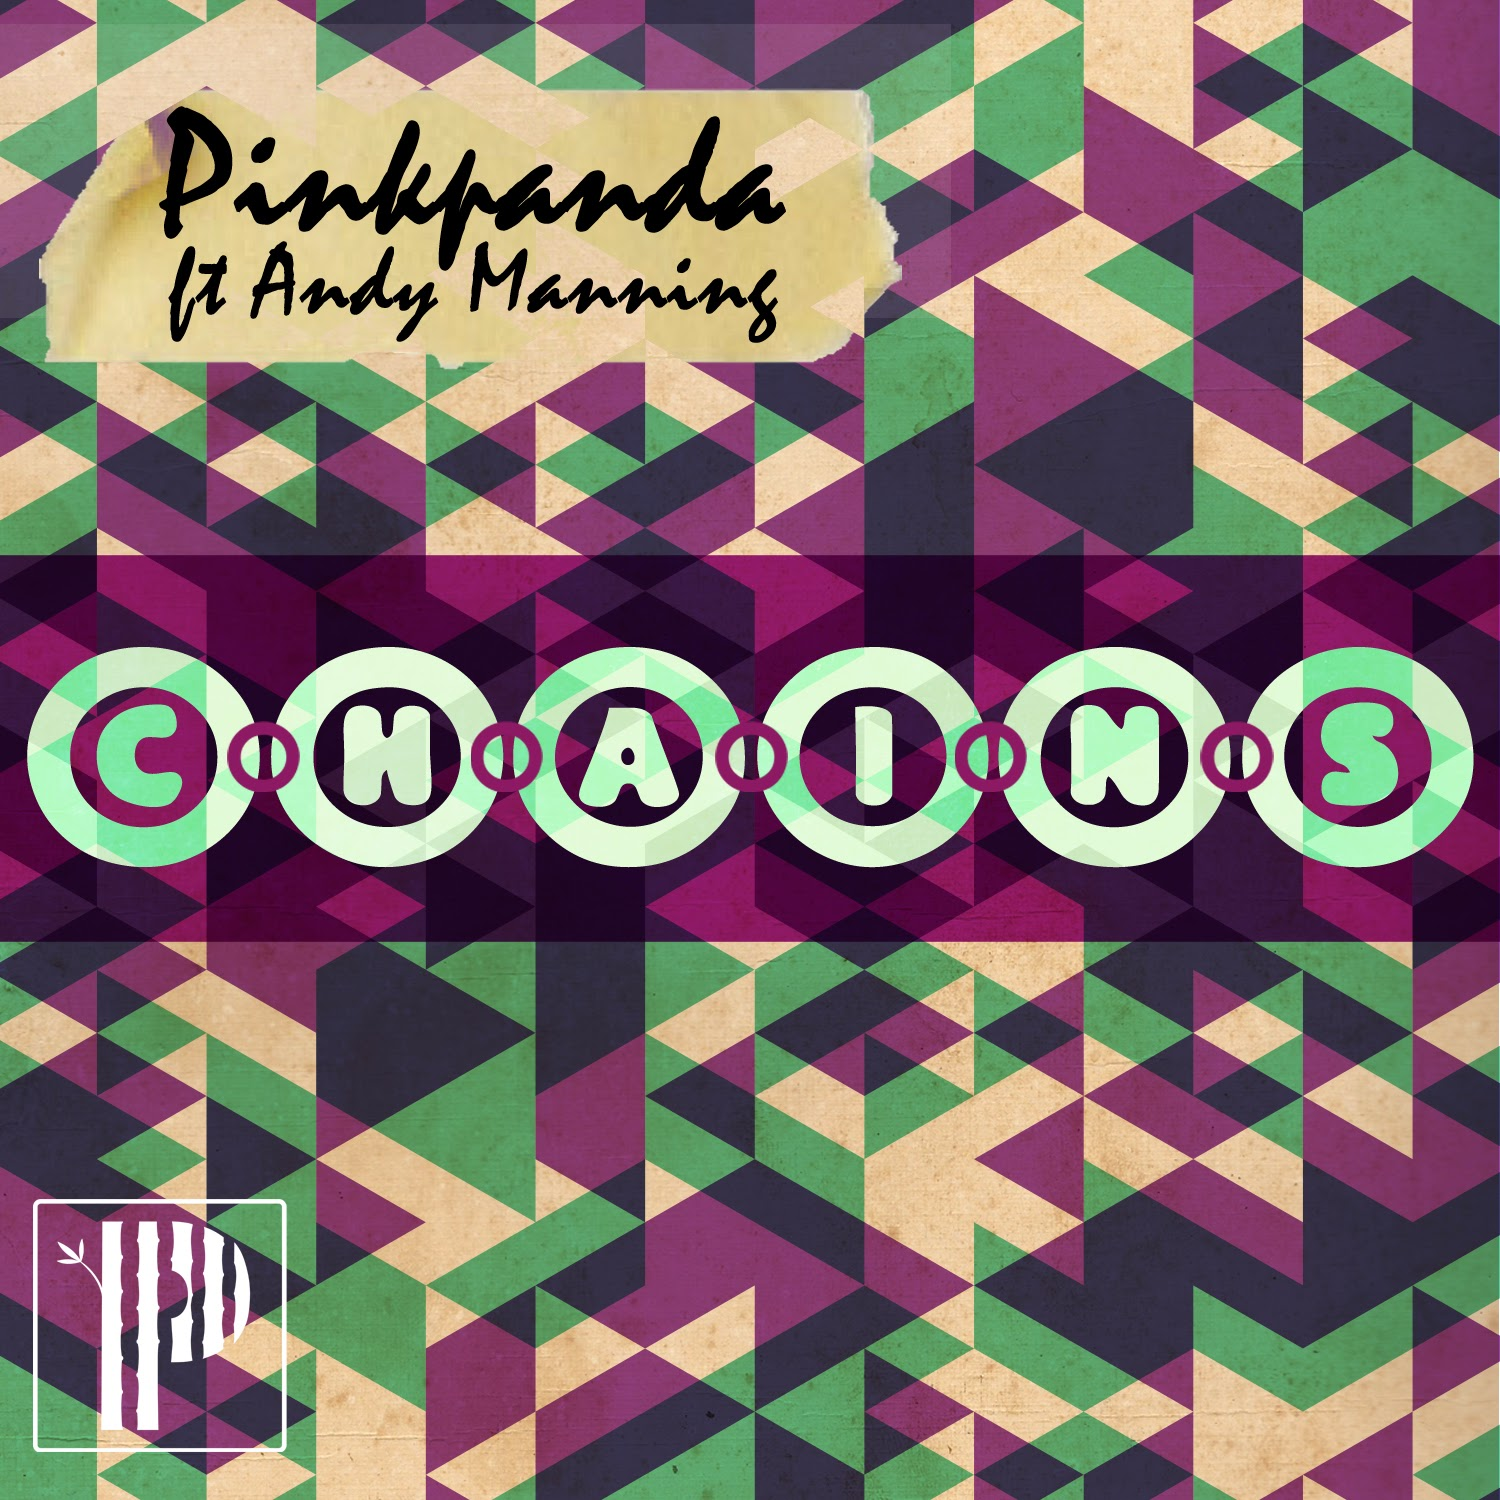 PINK PANDA feat. Andy Manning - CHAINS